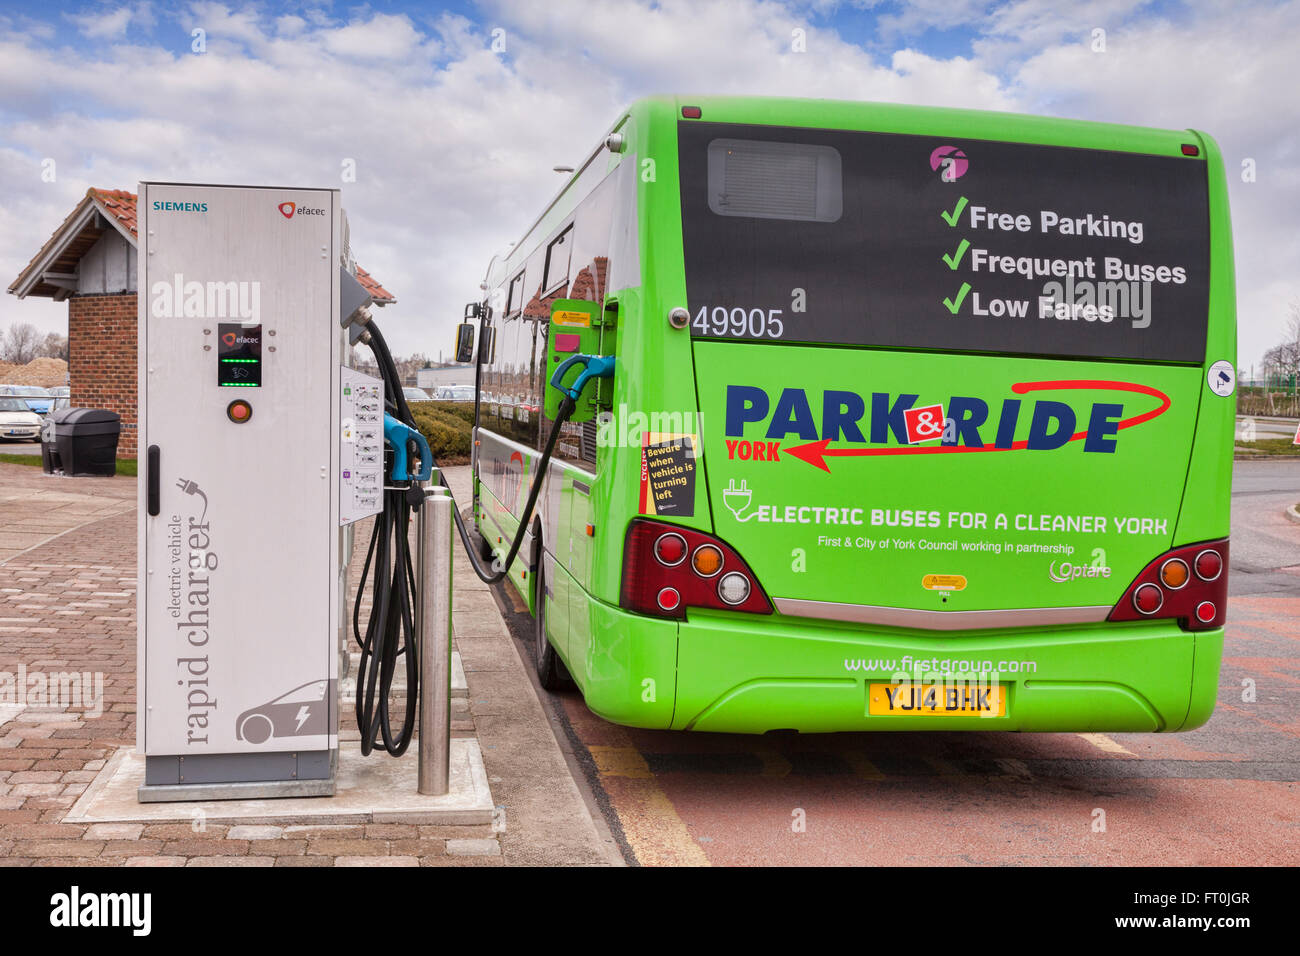 Electric bus being recharged at Siemens Electric Vehicle Rapid Charger, at York Park and Ride, York, North Yorkshire, - Stock Image